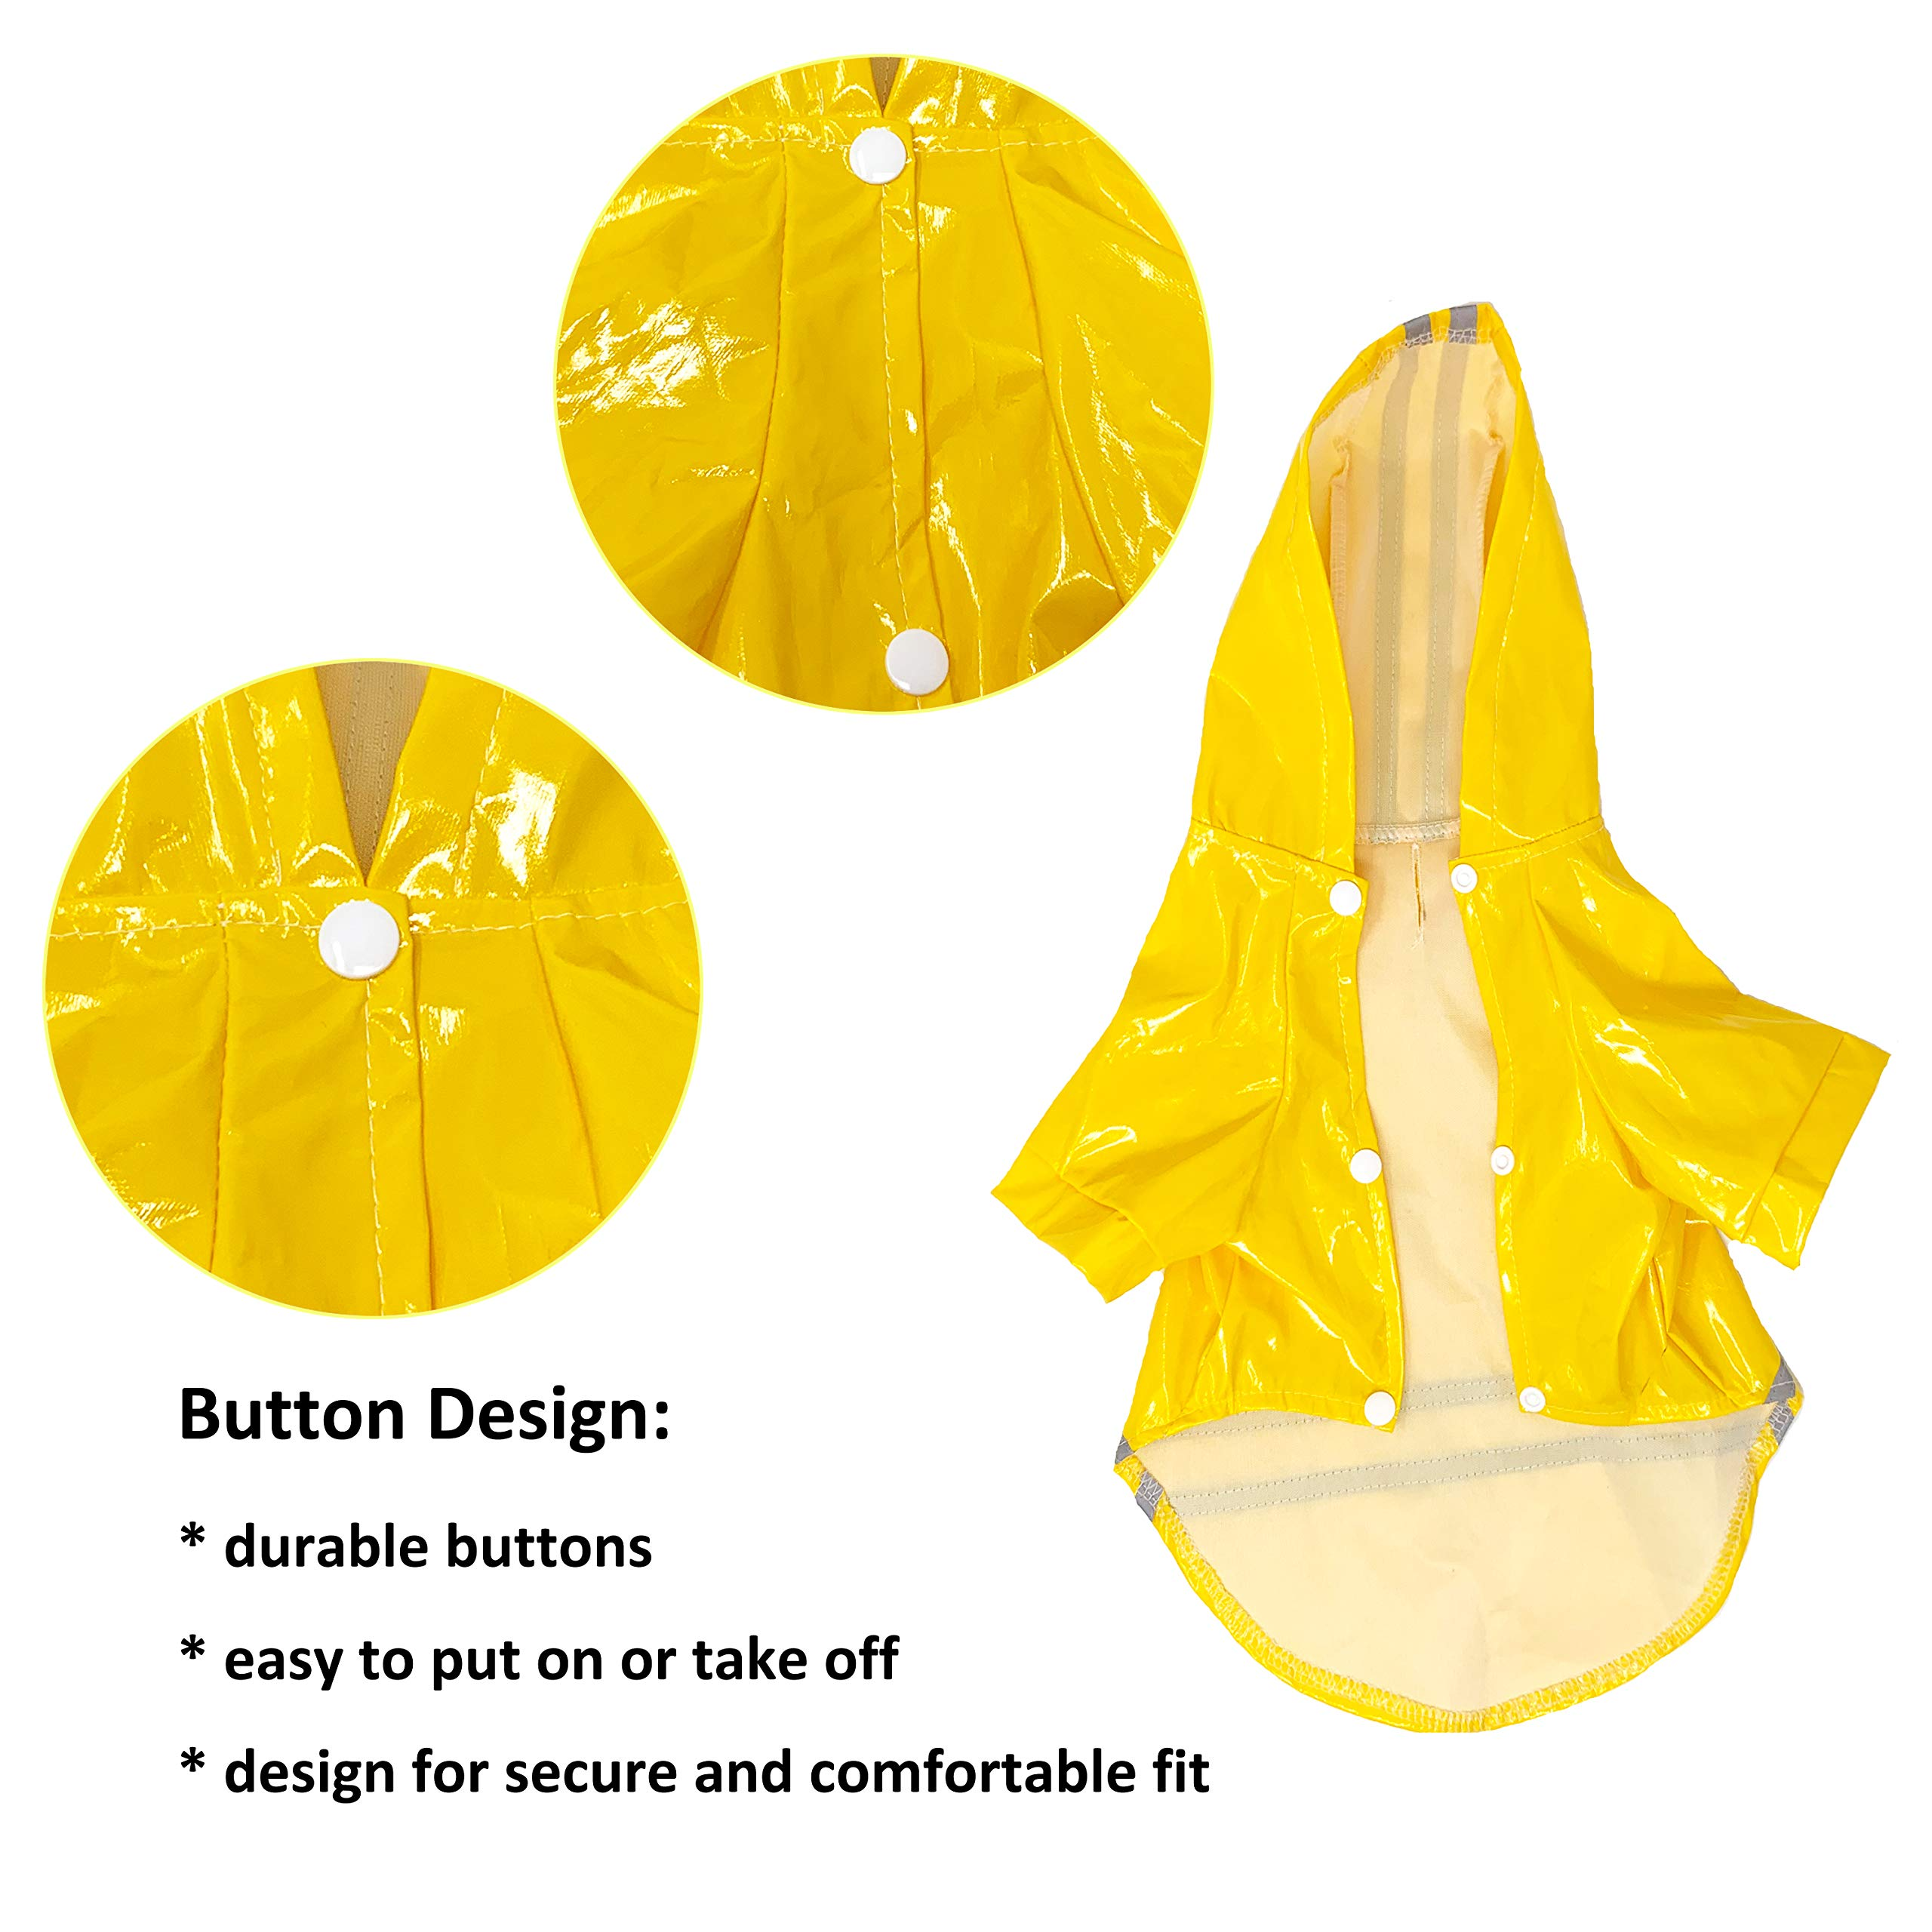 Cutie Pet Dog Raincoat Waterproof Coats for Dogs Lightweight Rain Jacket Breathable Rain Poncho Hooded Rainwear with Safety Reflective Stripes (L, Yellow)